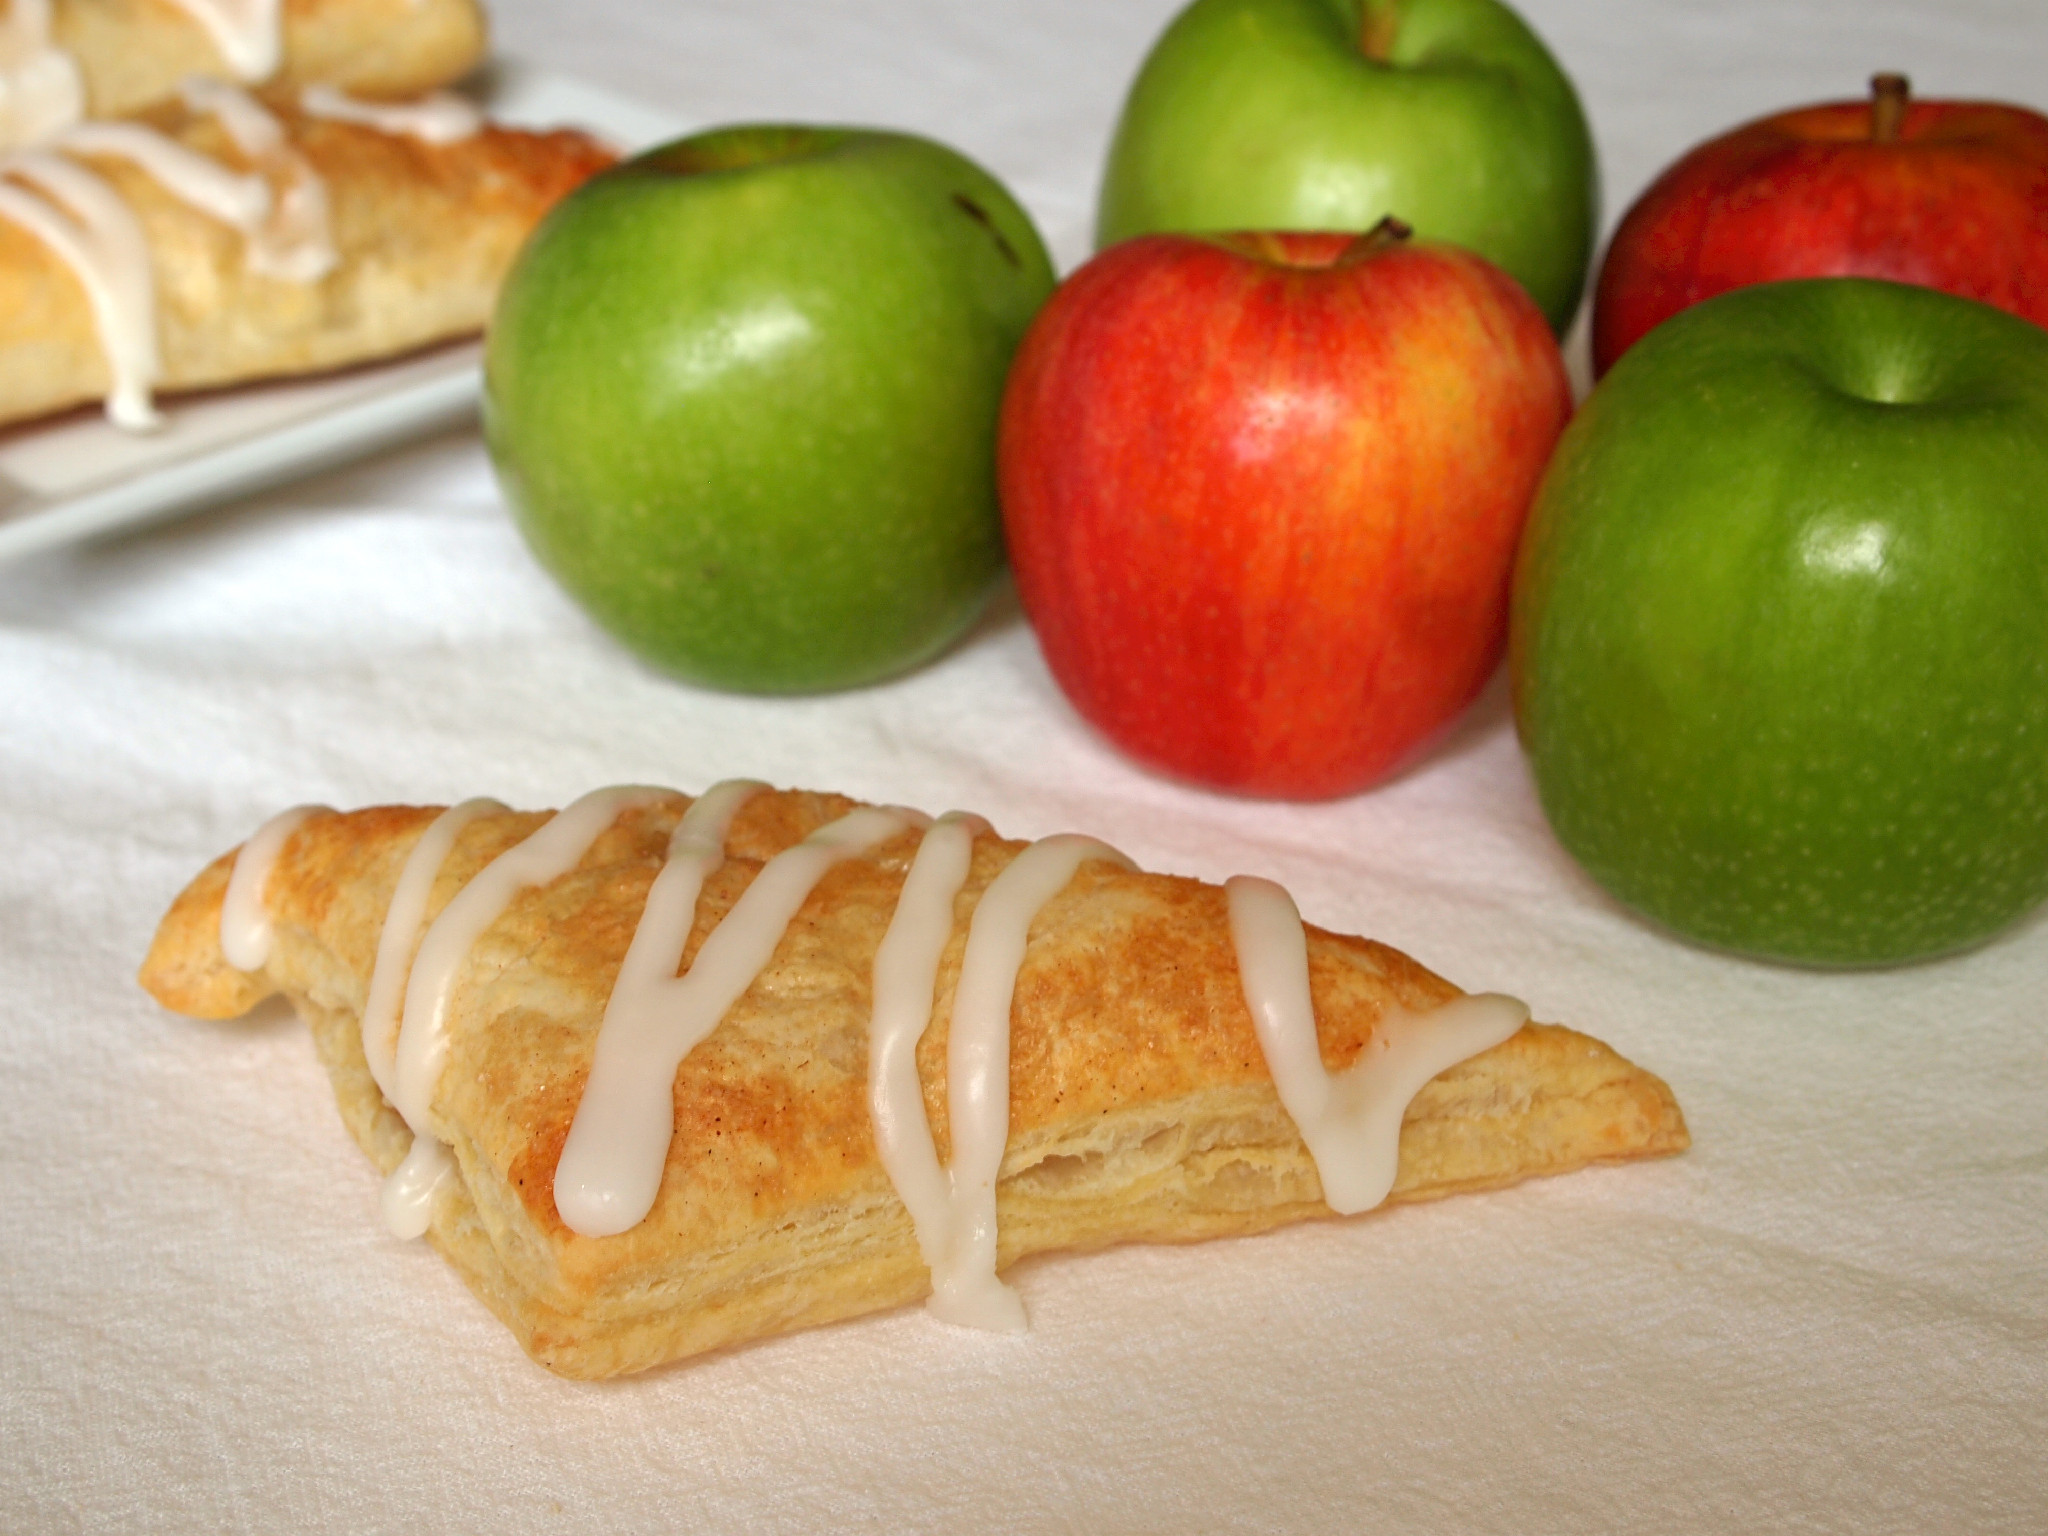 Apple turnovers are a sweet breakfast treat with a cup of coffee, as an afternoon snack, or for a light dessert. The best part is that they're incredibly easy to make!